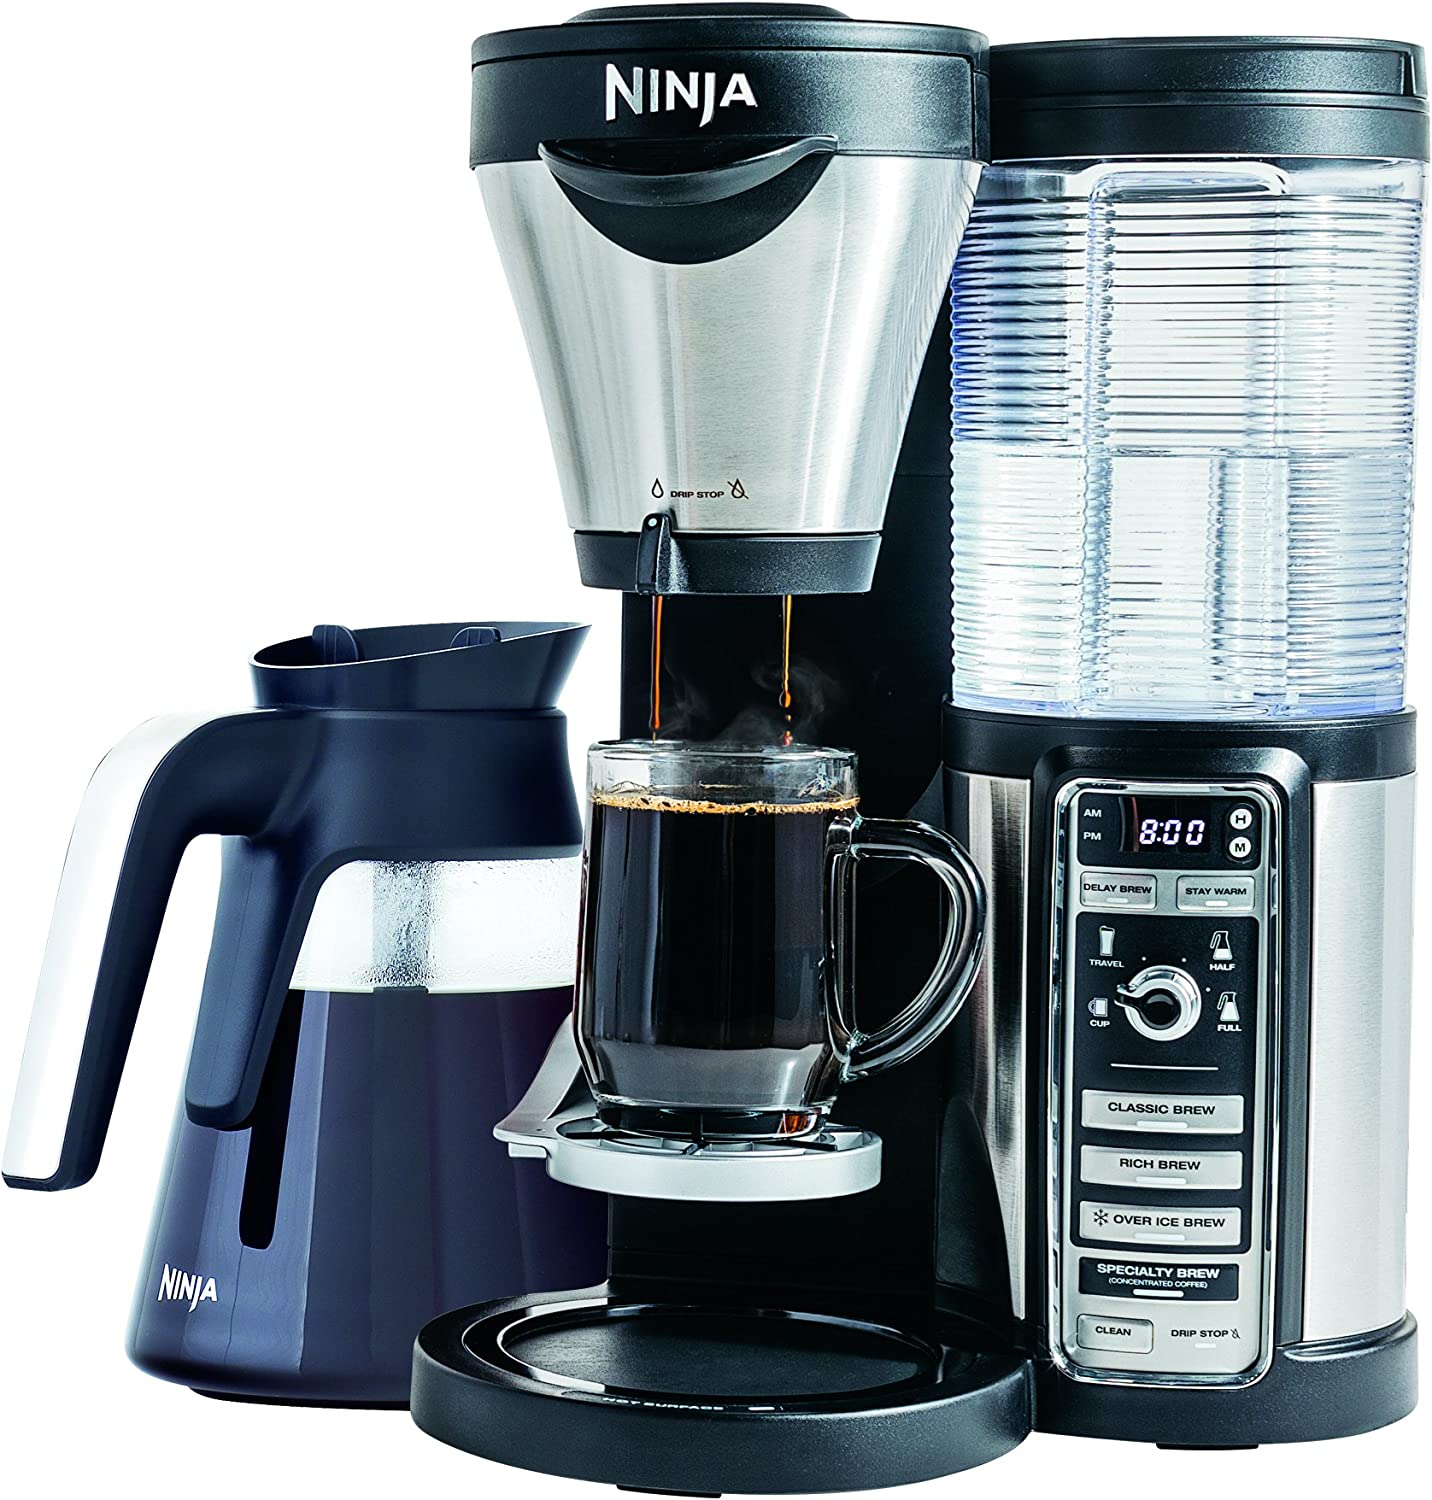 Ninja Coffee Maker for Hot Iced Coffee with 4 Brew Sizes, Programmable Auto-iQ, Milk Frother, 43oz Glass Carafe, Tumbler and 100 Recipes CF082